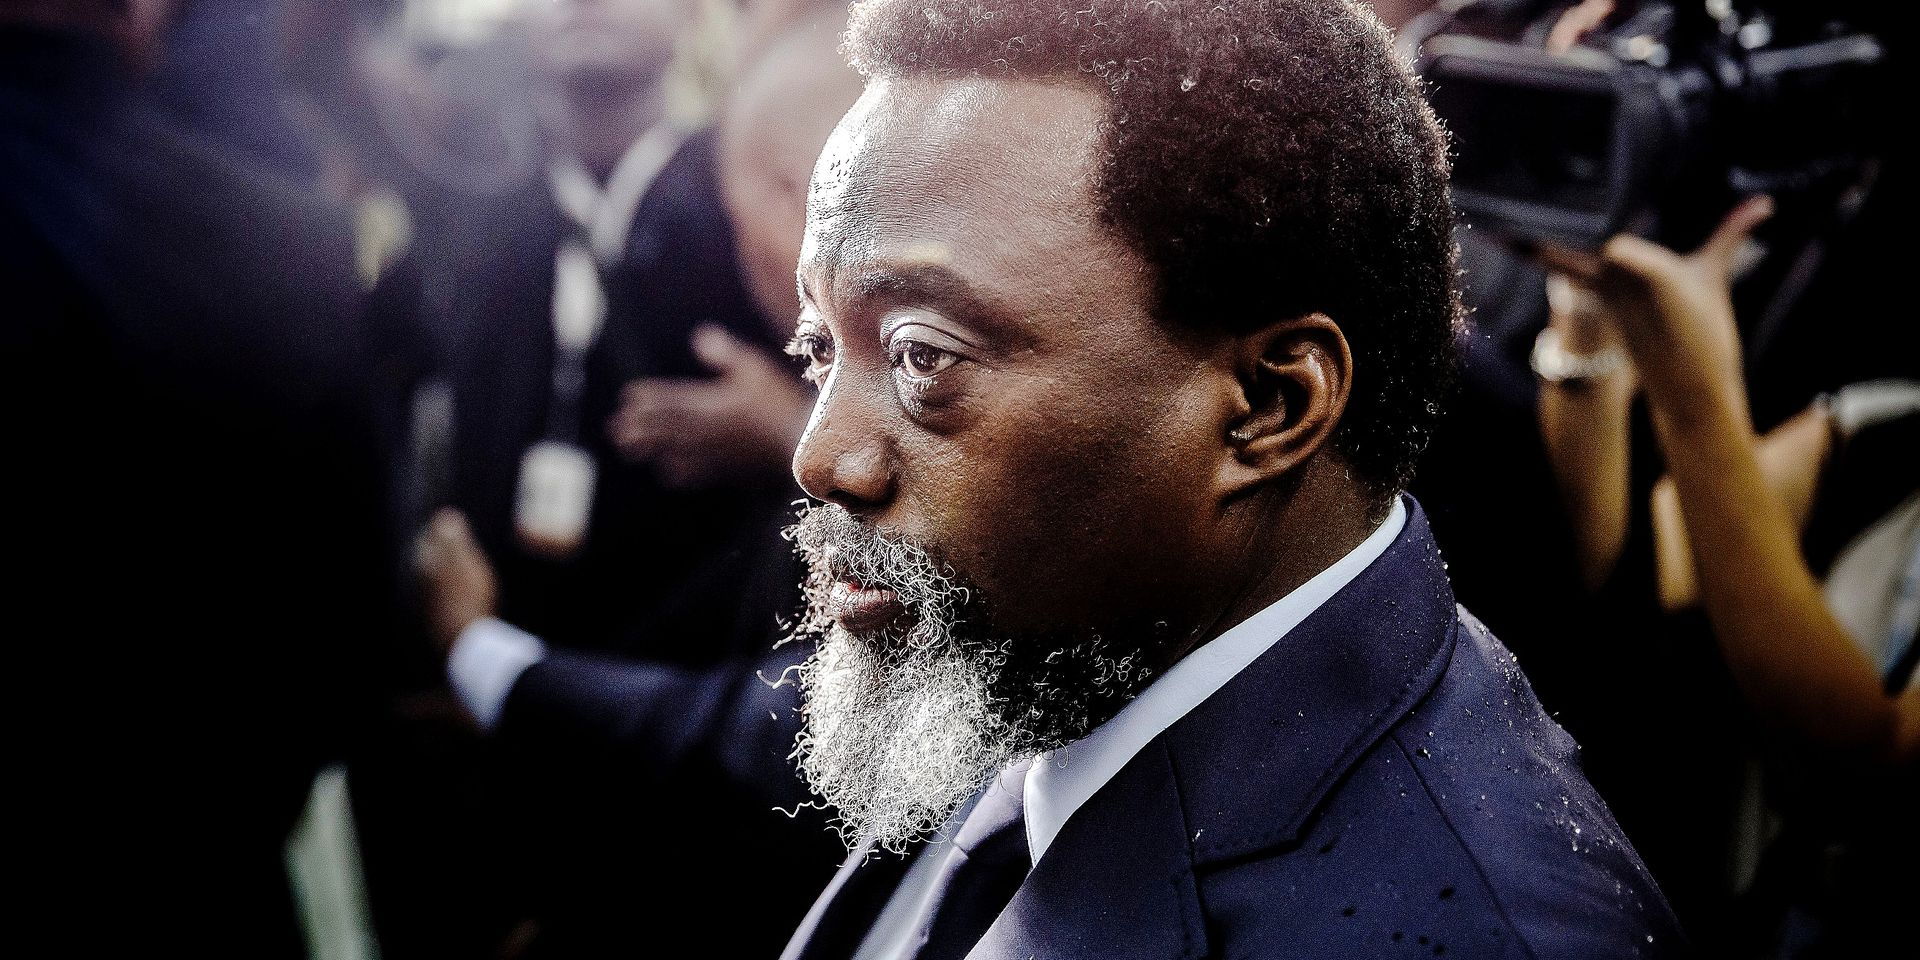 President of the Democratic Republic of Congo Joseph Kabila arrives at the Insititut de la Gombe polling station to cast his vote during general elections in Kinshasa on December 30, 2018. - Voters in the Democratic Republic of Congo went to the polls on December 30 in elections that will shape the future of their vast, troubled country, amid fears that violence could overshadow the ballot. (Photo by Luis TATO / AFP)